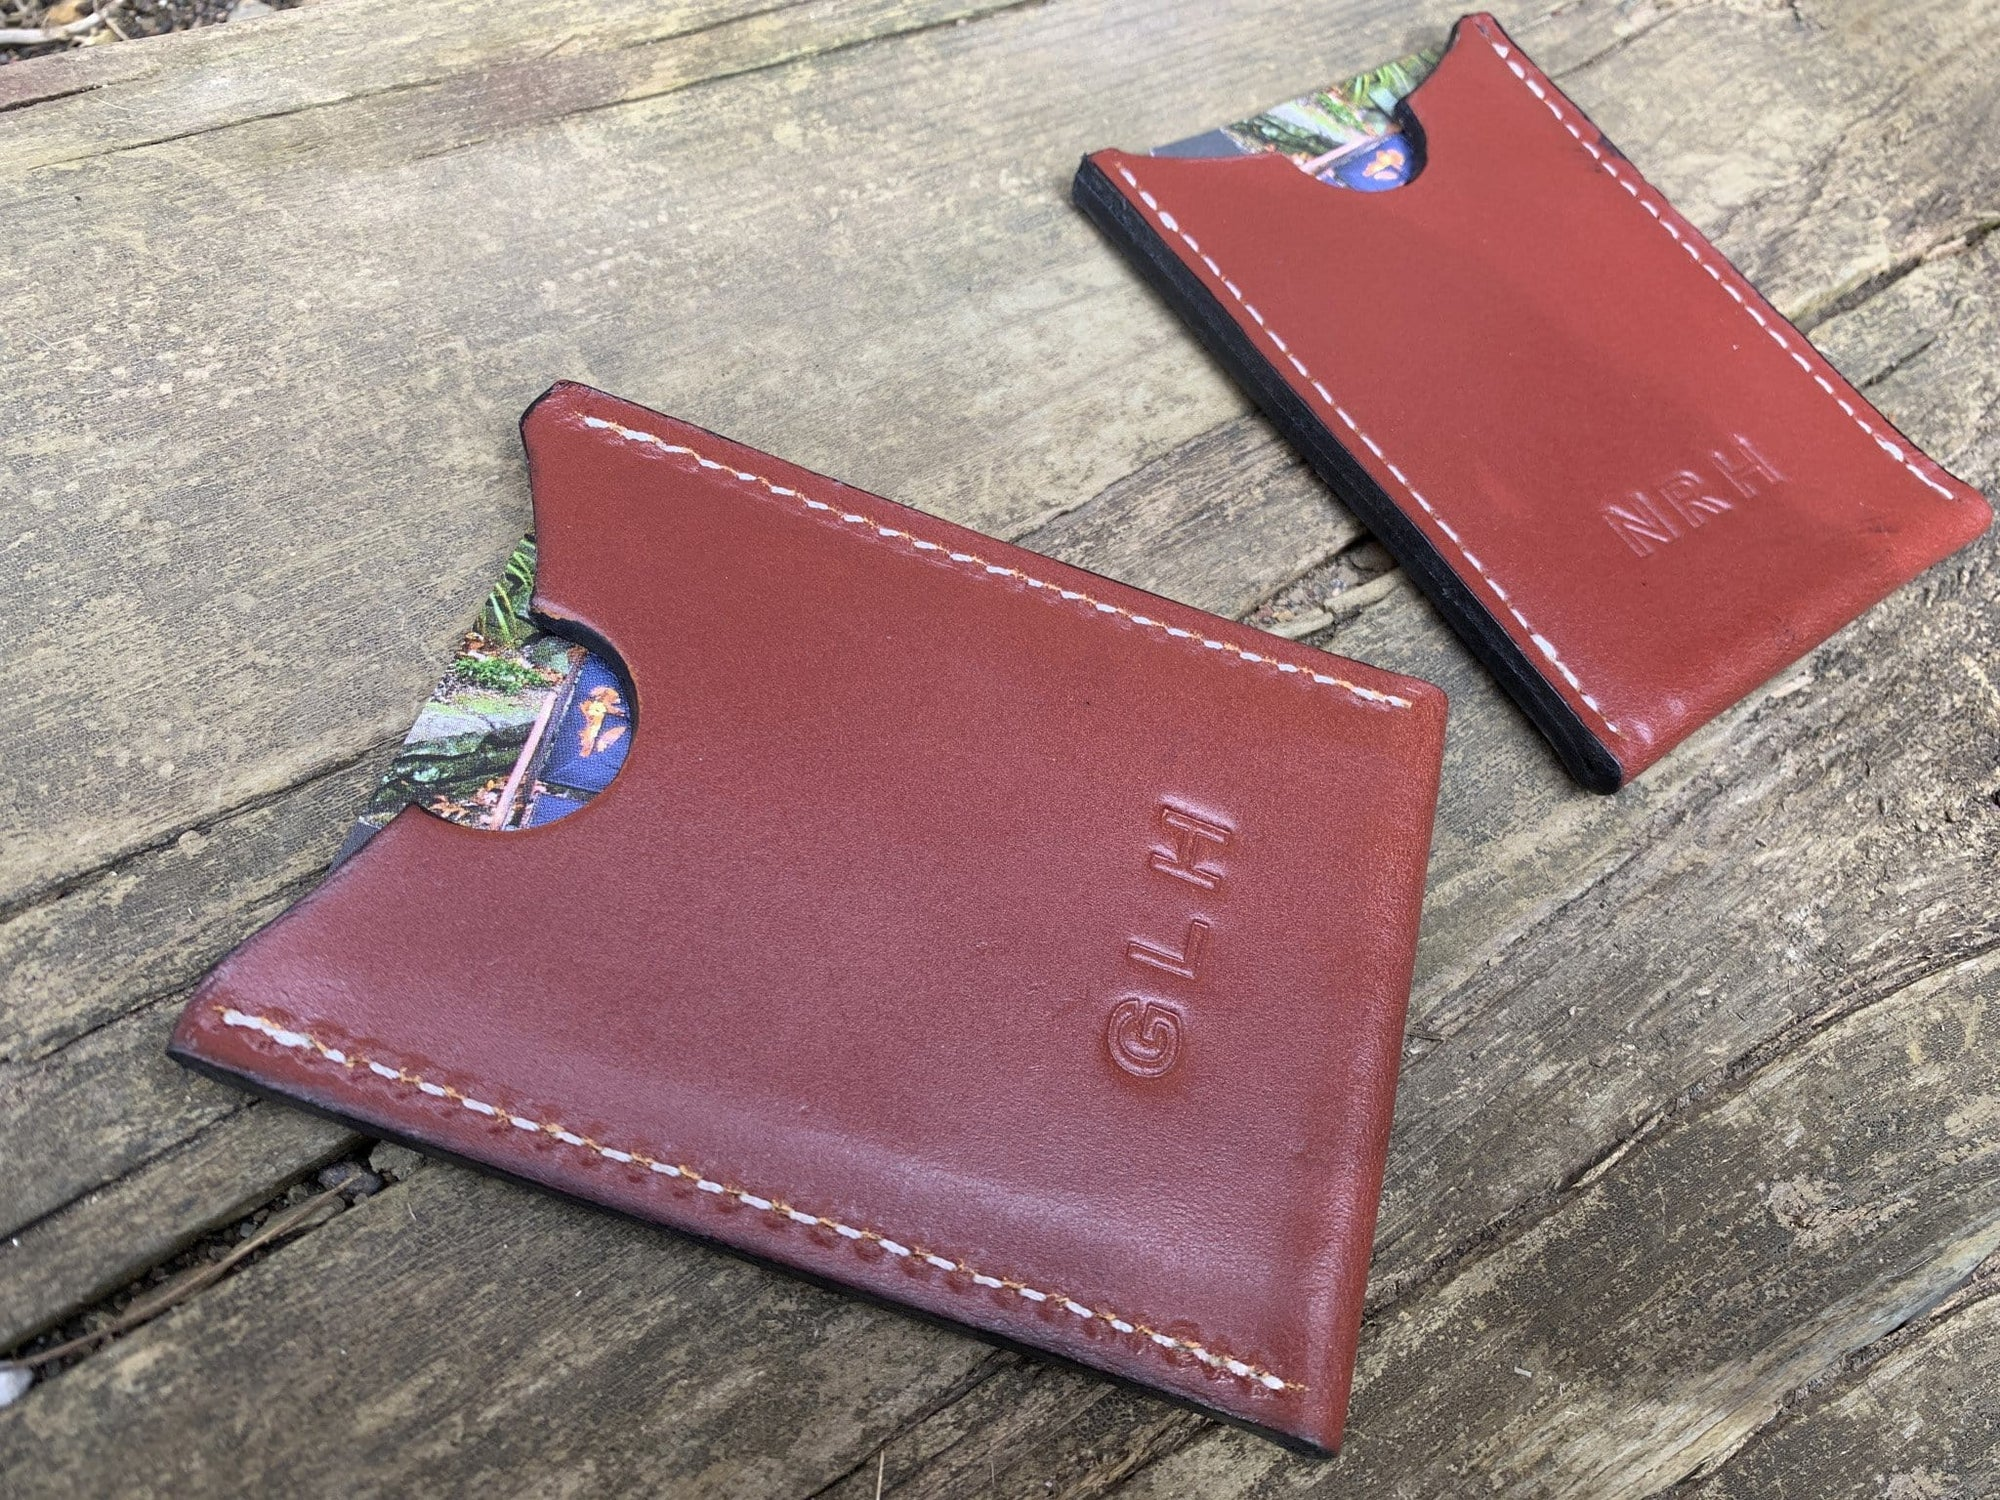 Minimalist leather card wallet with monogram